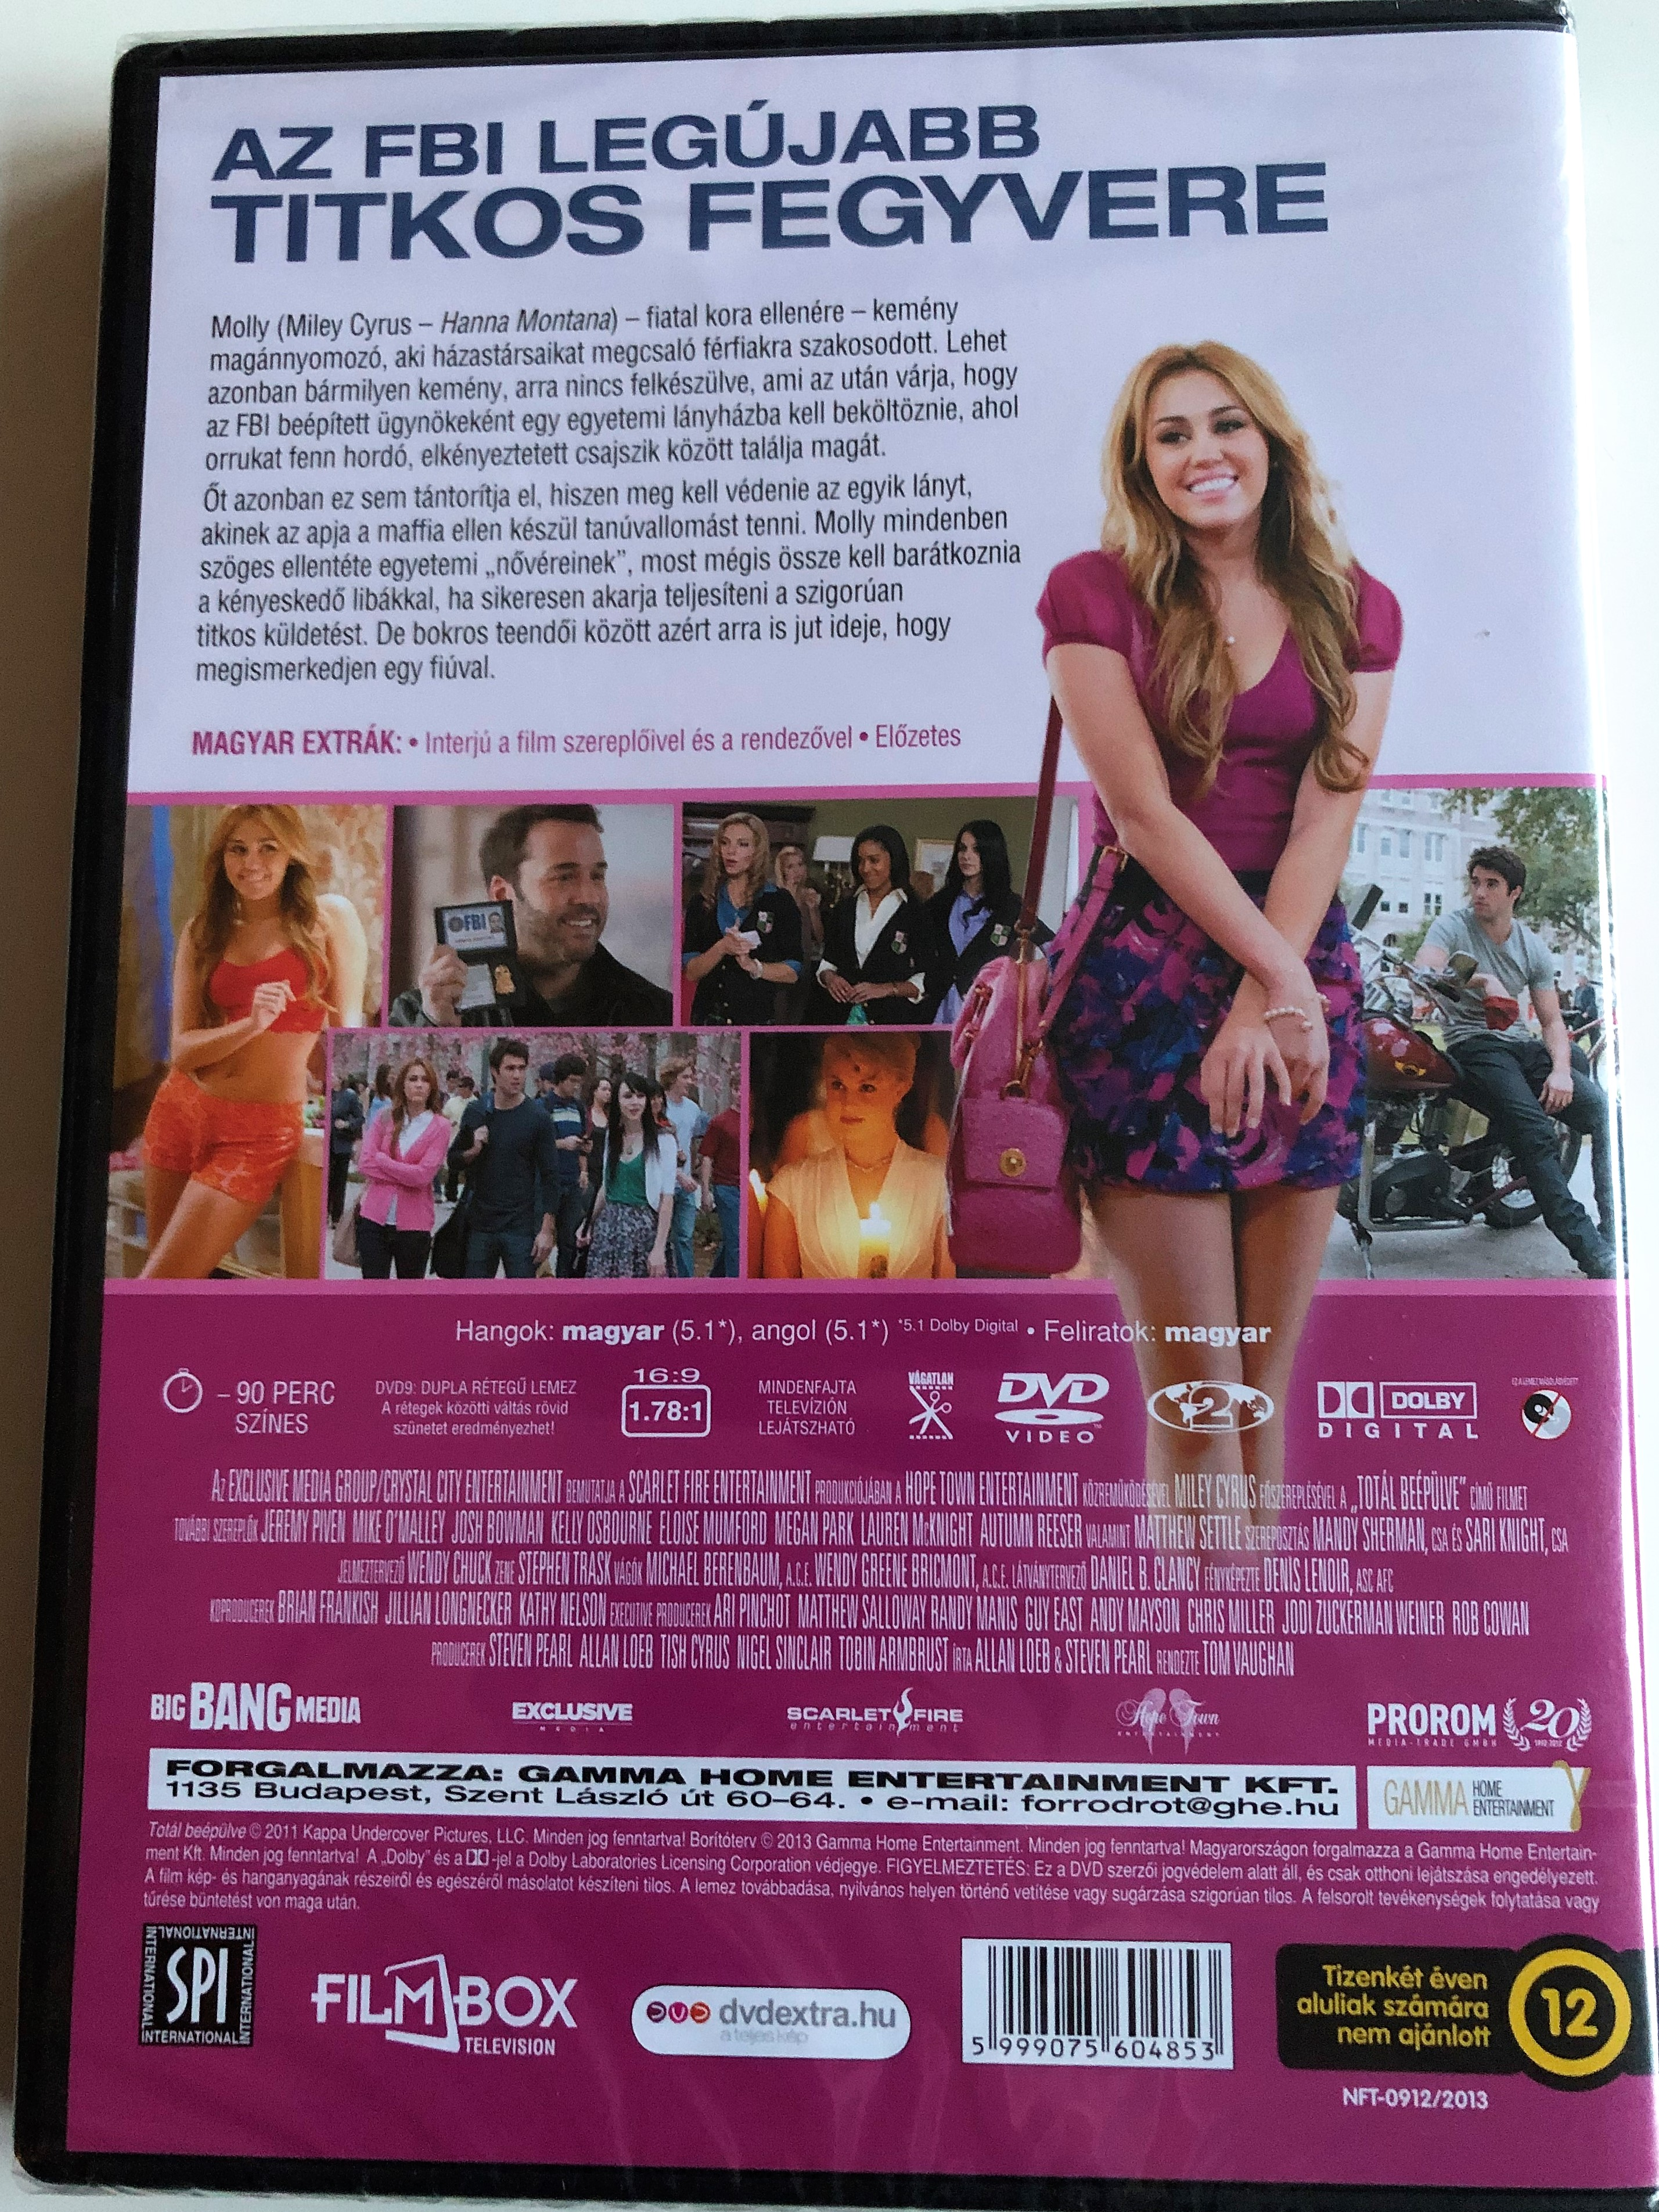 so-undercover-dvd-2012-tot-l-be-p-lve-directed-by-tom-vaughan-starring-miley-cyrus-jeremy-piven-2.jpg